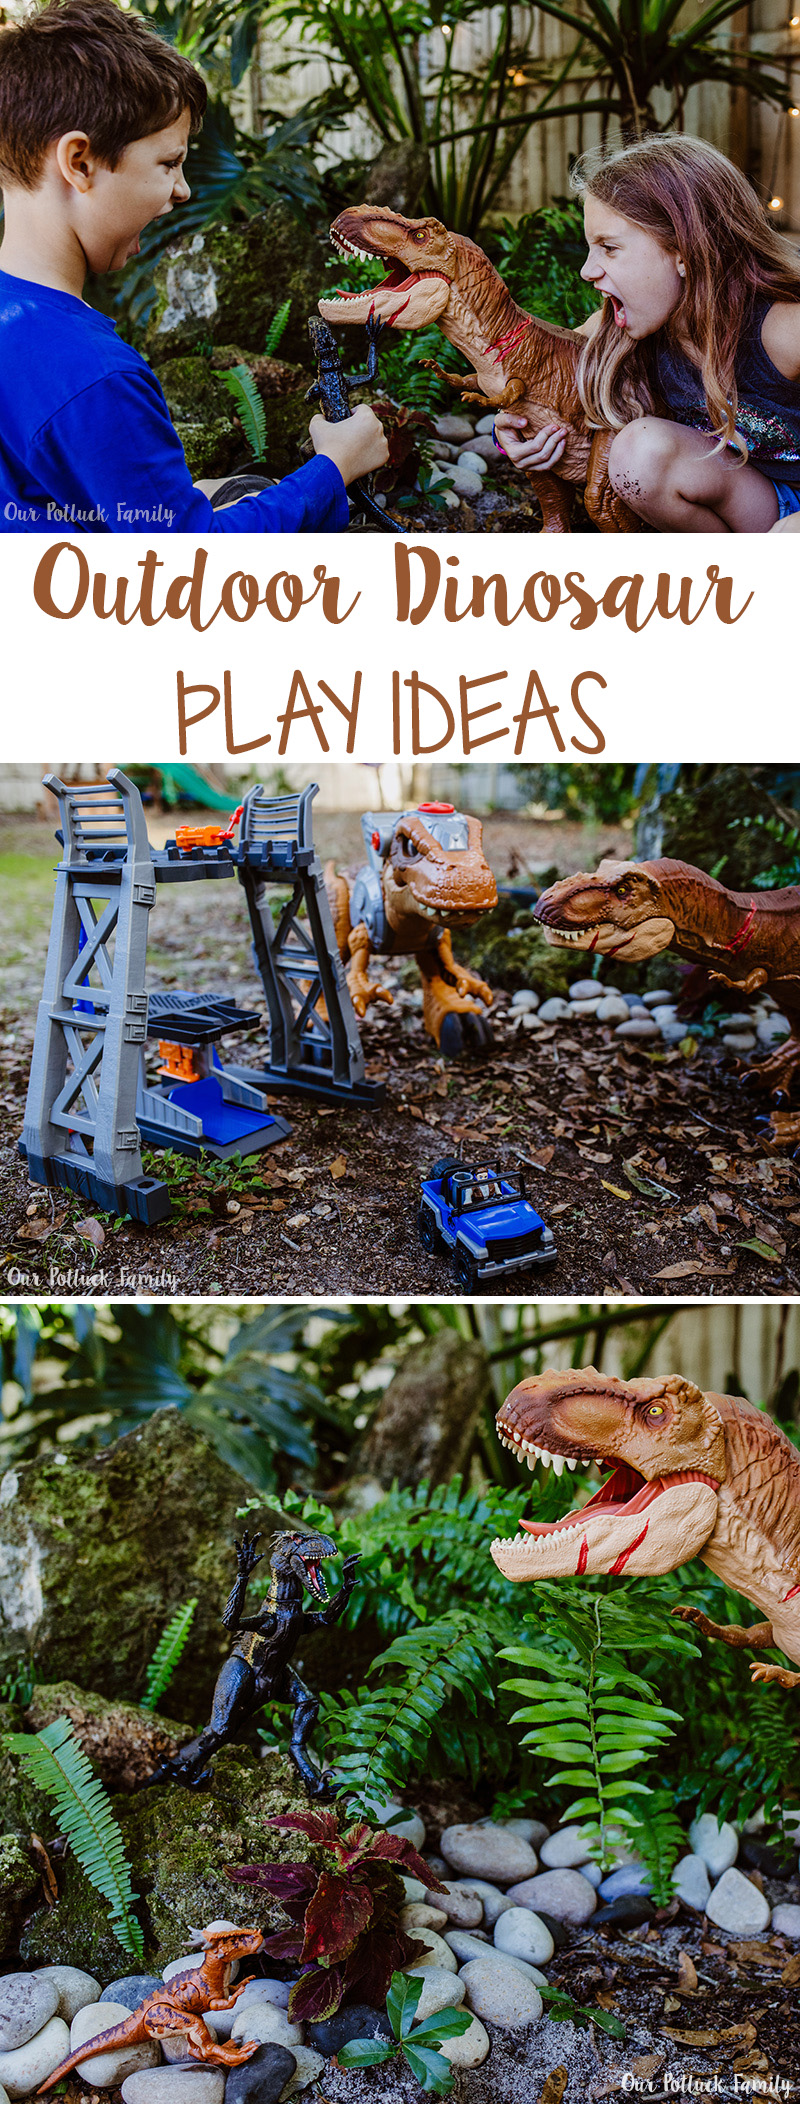 Outdoor Dinosaur Play Ideas